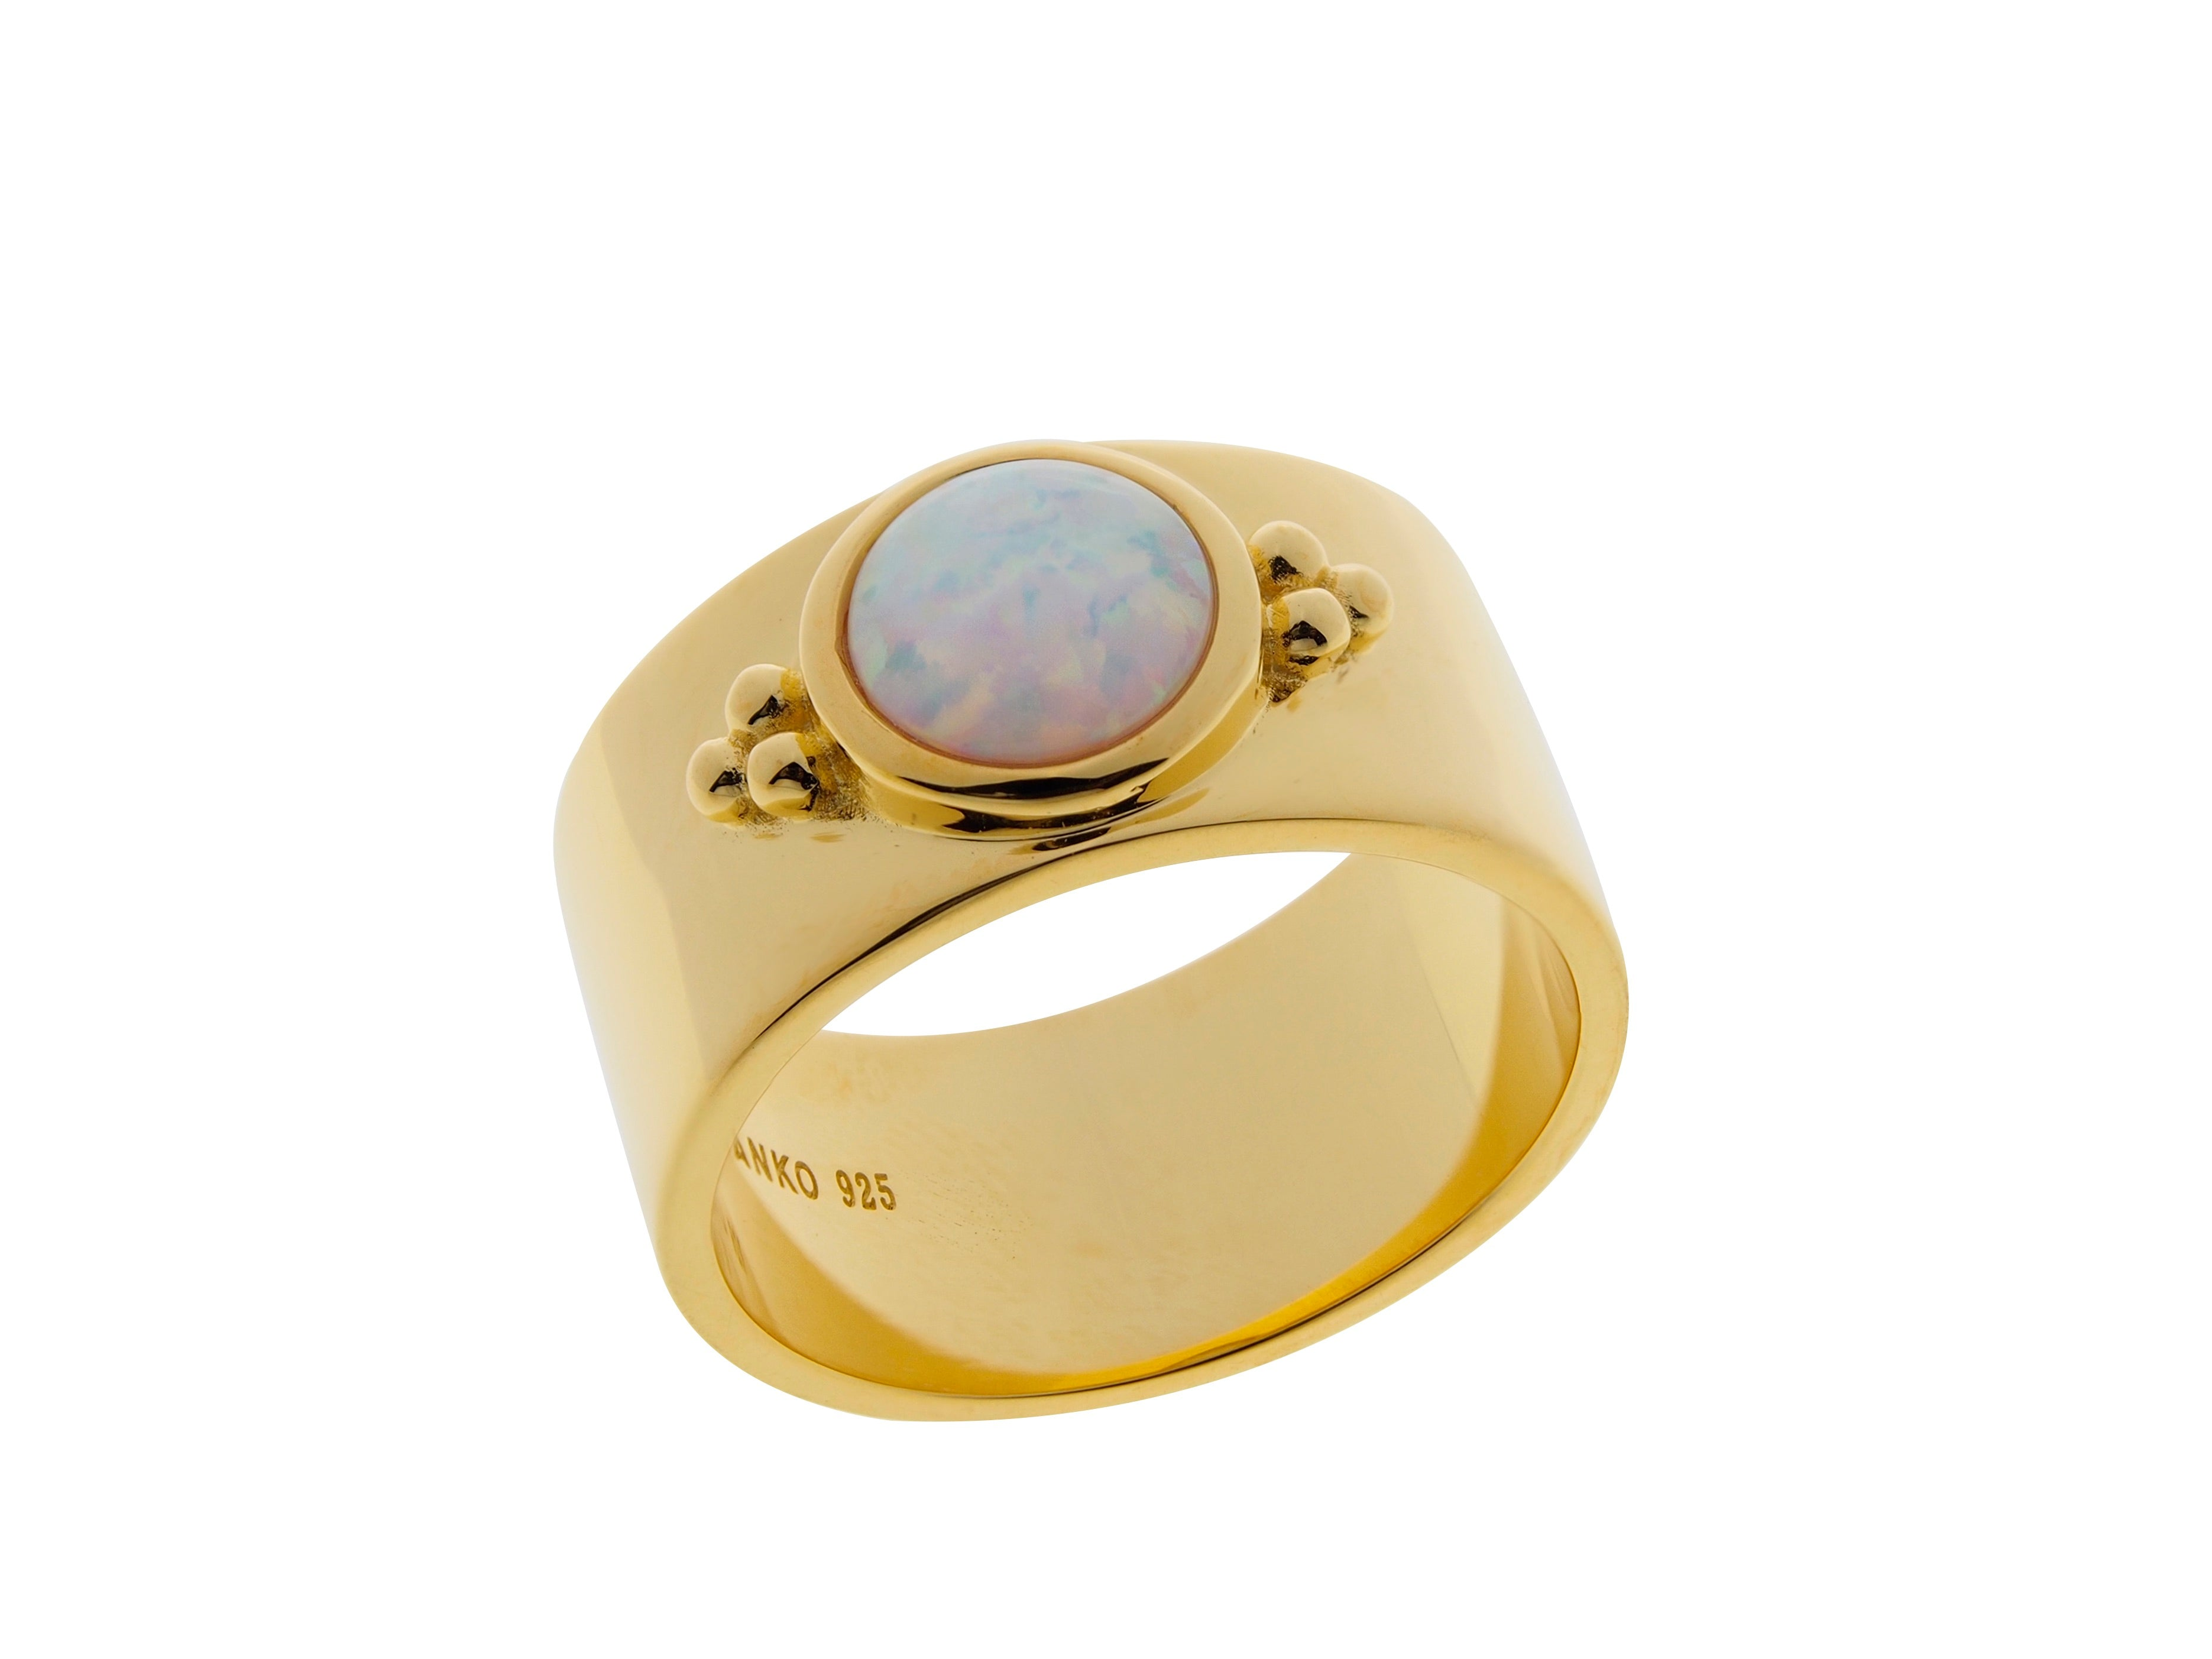 Lucky bay opal ring, sterling silver, yellow gold plated